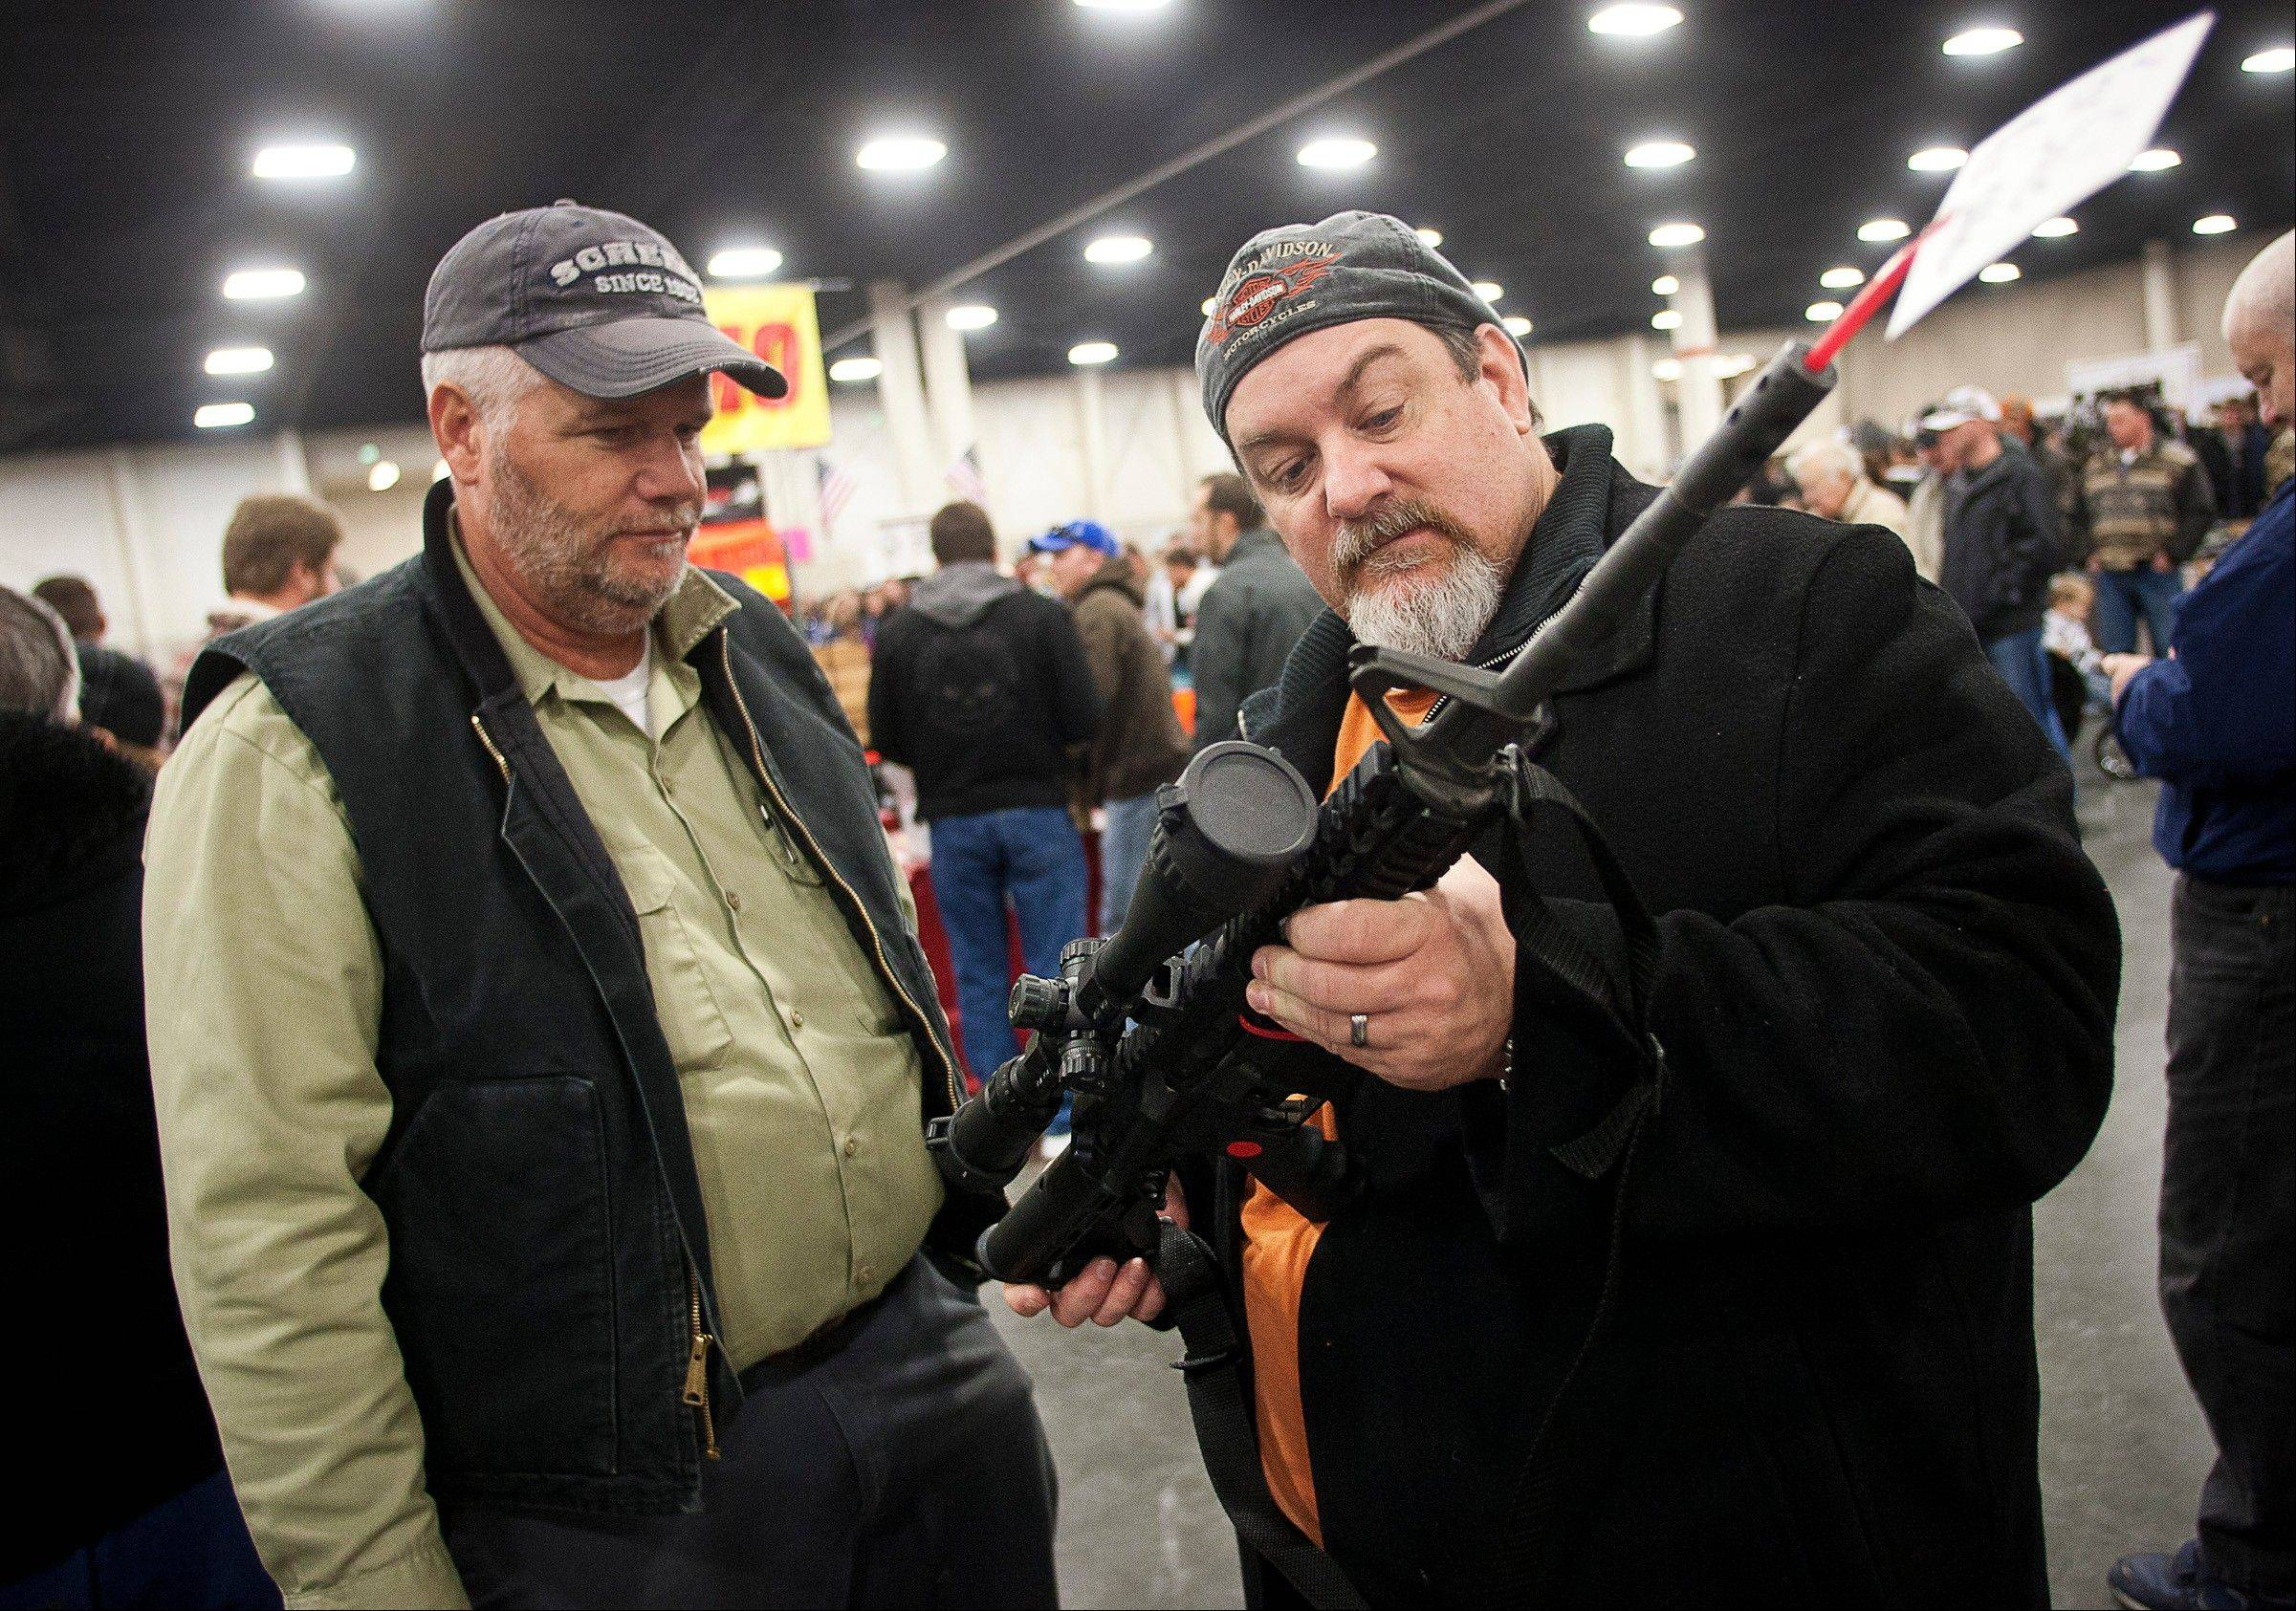 Gun owners discuss a potential sale of an AR-15, one of the most popular and controversial weapons, during the 2013 Rocky Mountain Gun Show at the South Towne Expo Center in Sandy, Utah Saturday. In spite of the recent school shooting in Newtown, Conn., gun enthusiasts packed in by the h